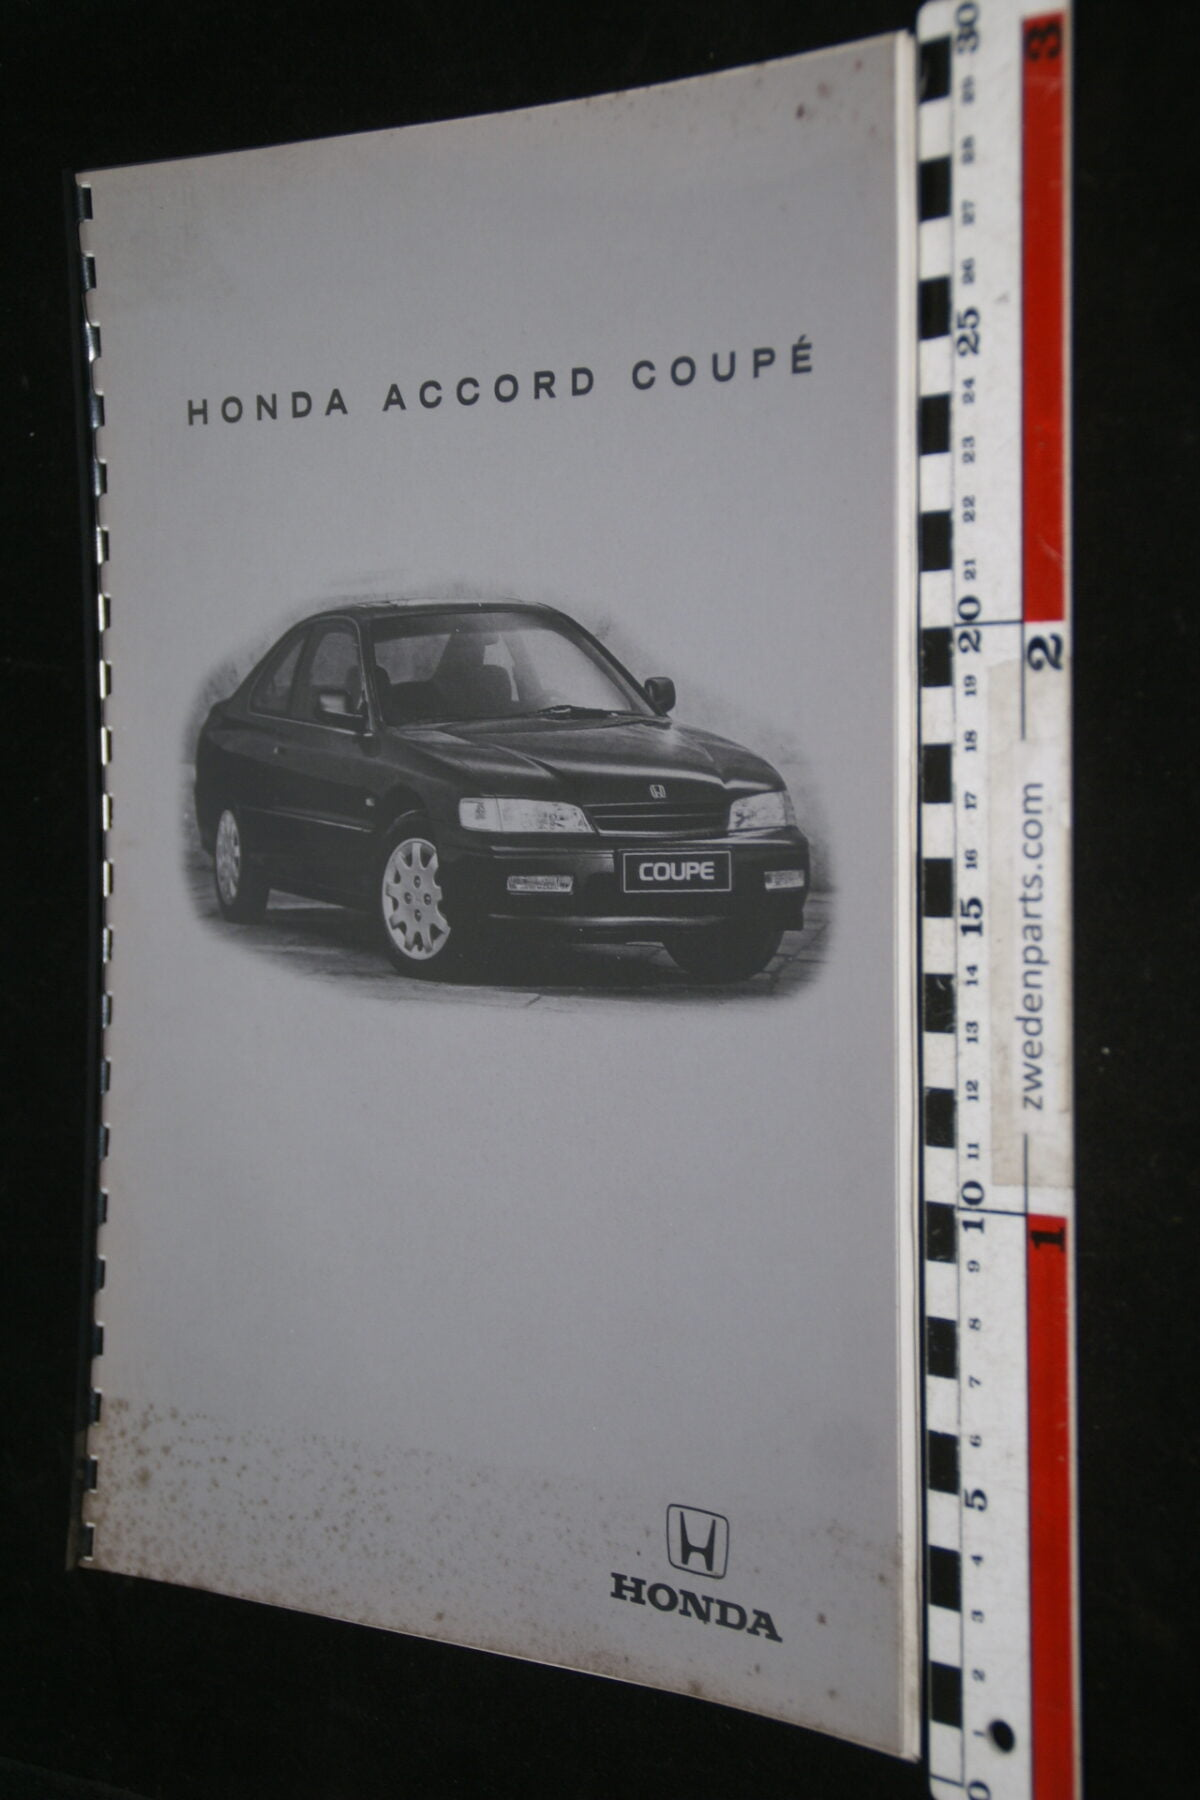 DSC01305 originele persmap Honda Accord coupé-14bf617c